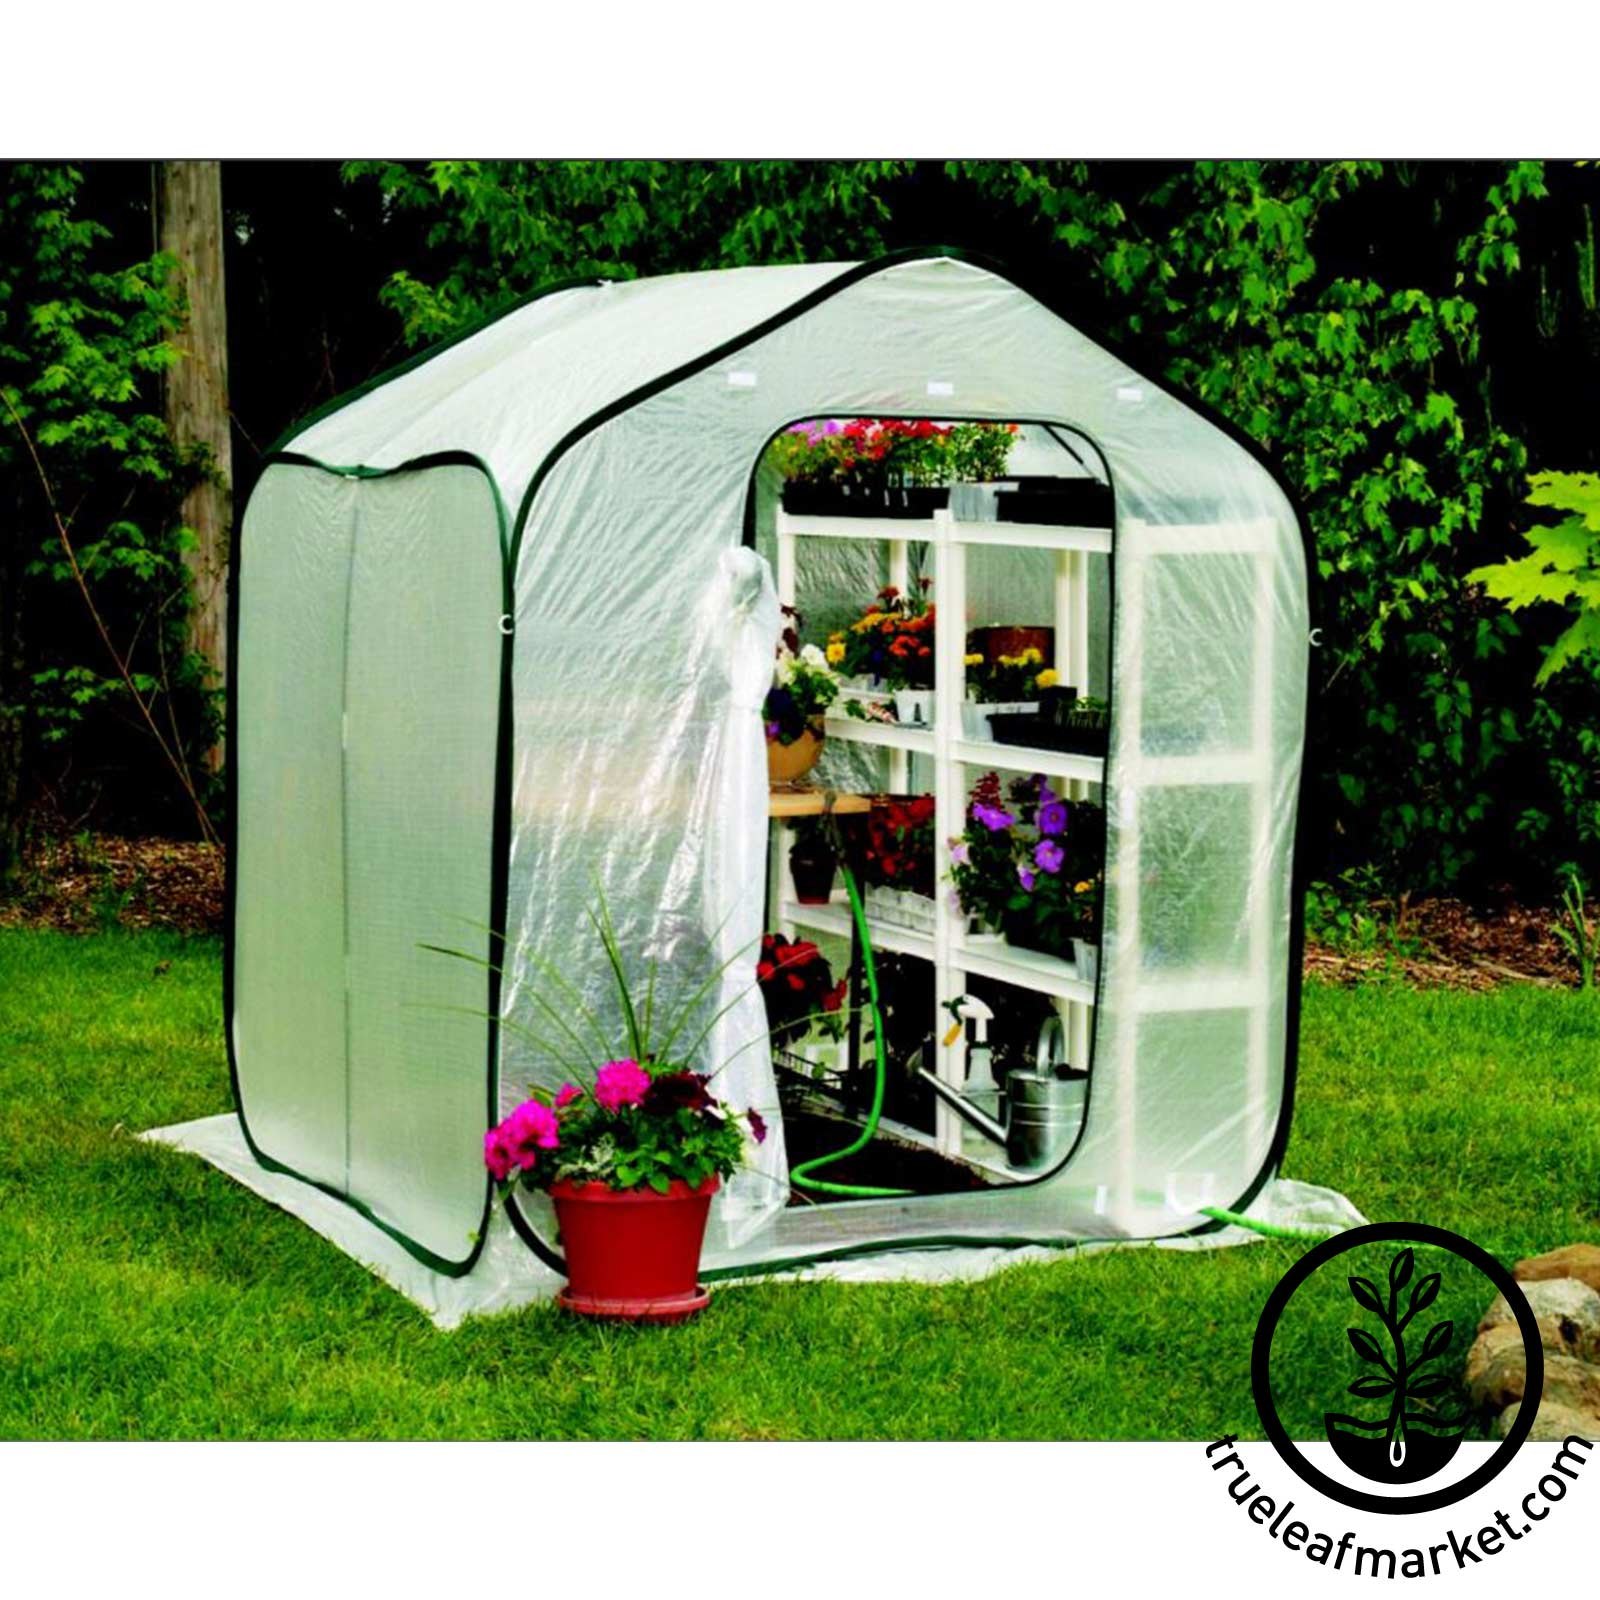 Mini Greenhouse - SpringHouse -  6 x 6 x 6.5 springhouse greenhouse, spring house mini-greenhouse